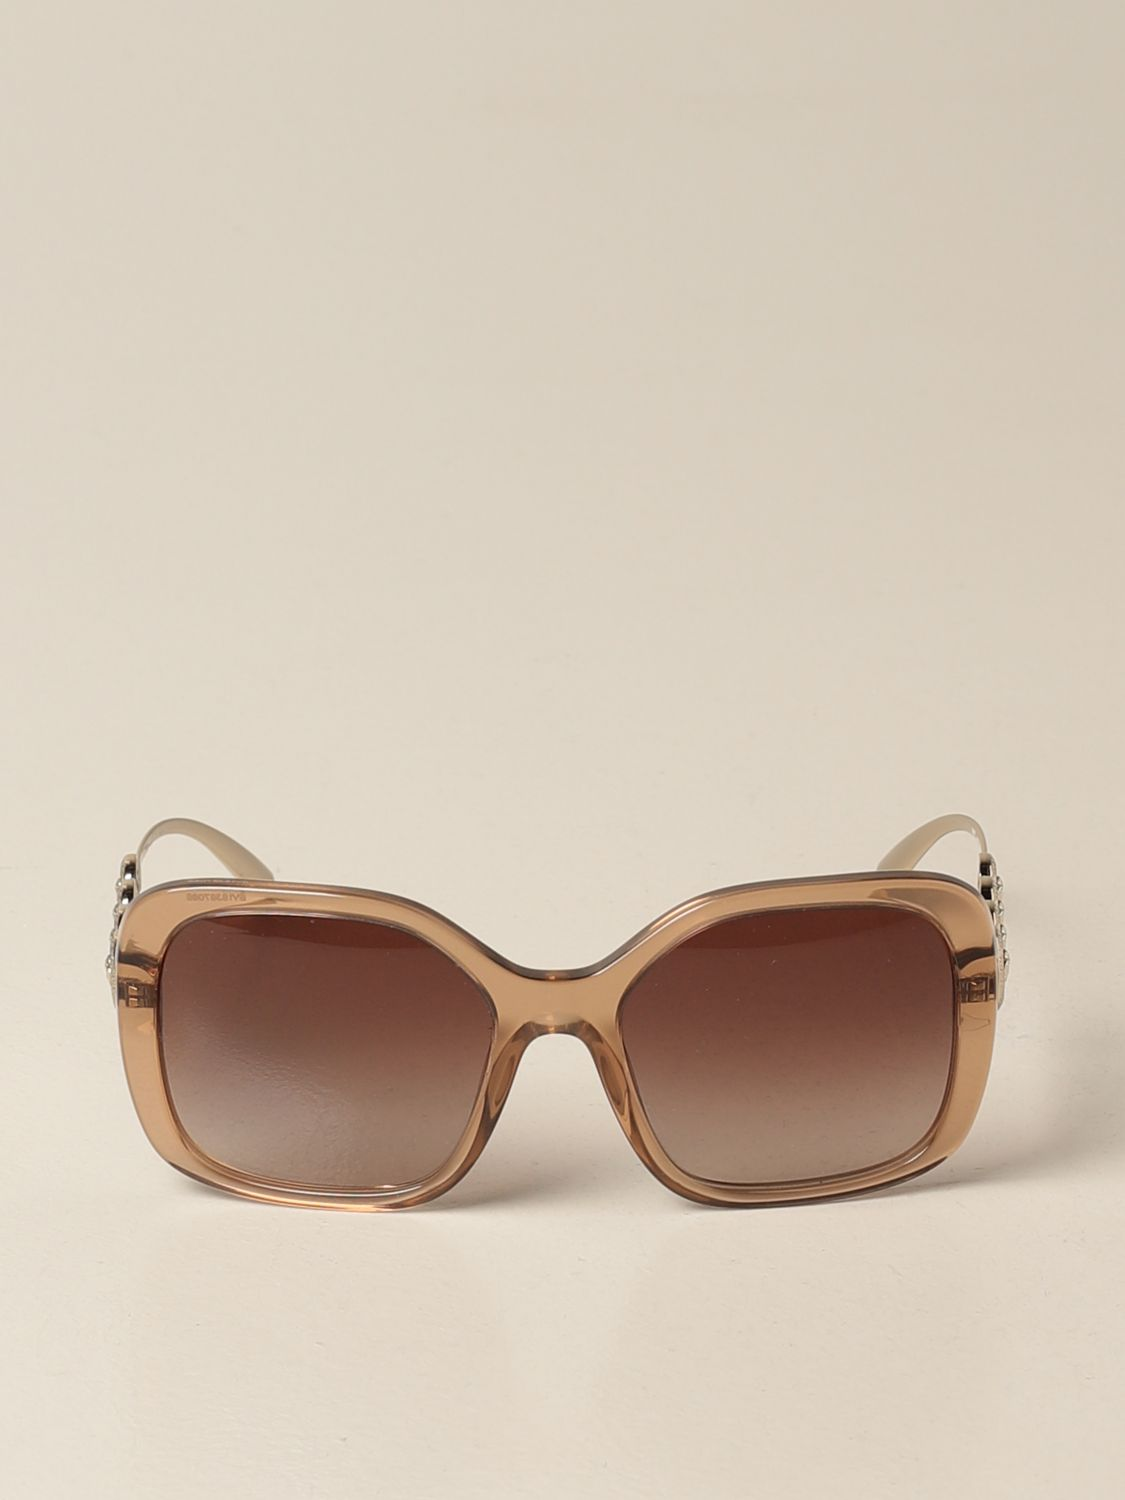 Glasses Versace: Versace sunglasses in acetate with metal temples salmon 2